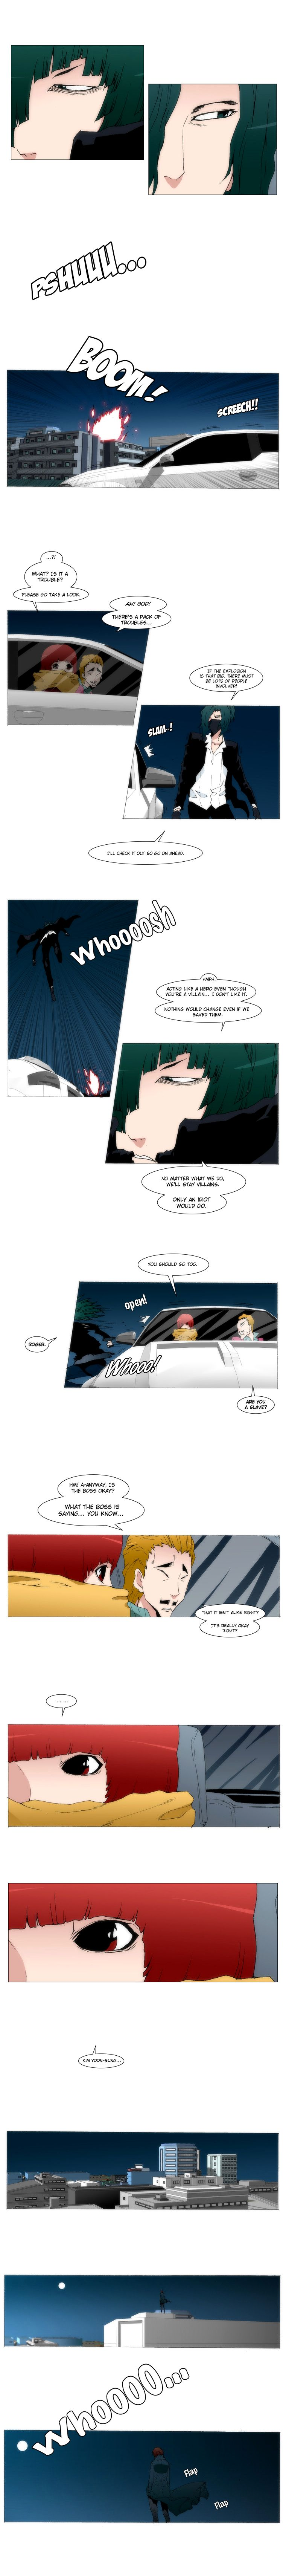 Trace 1.5 12 Page 2